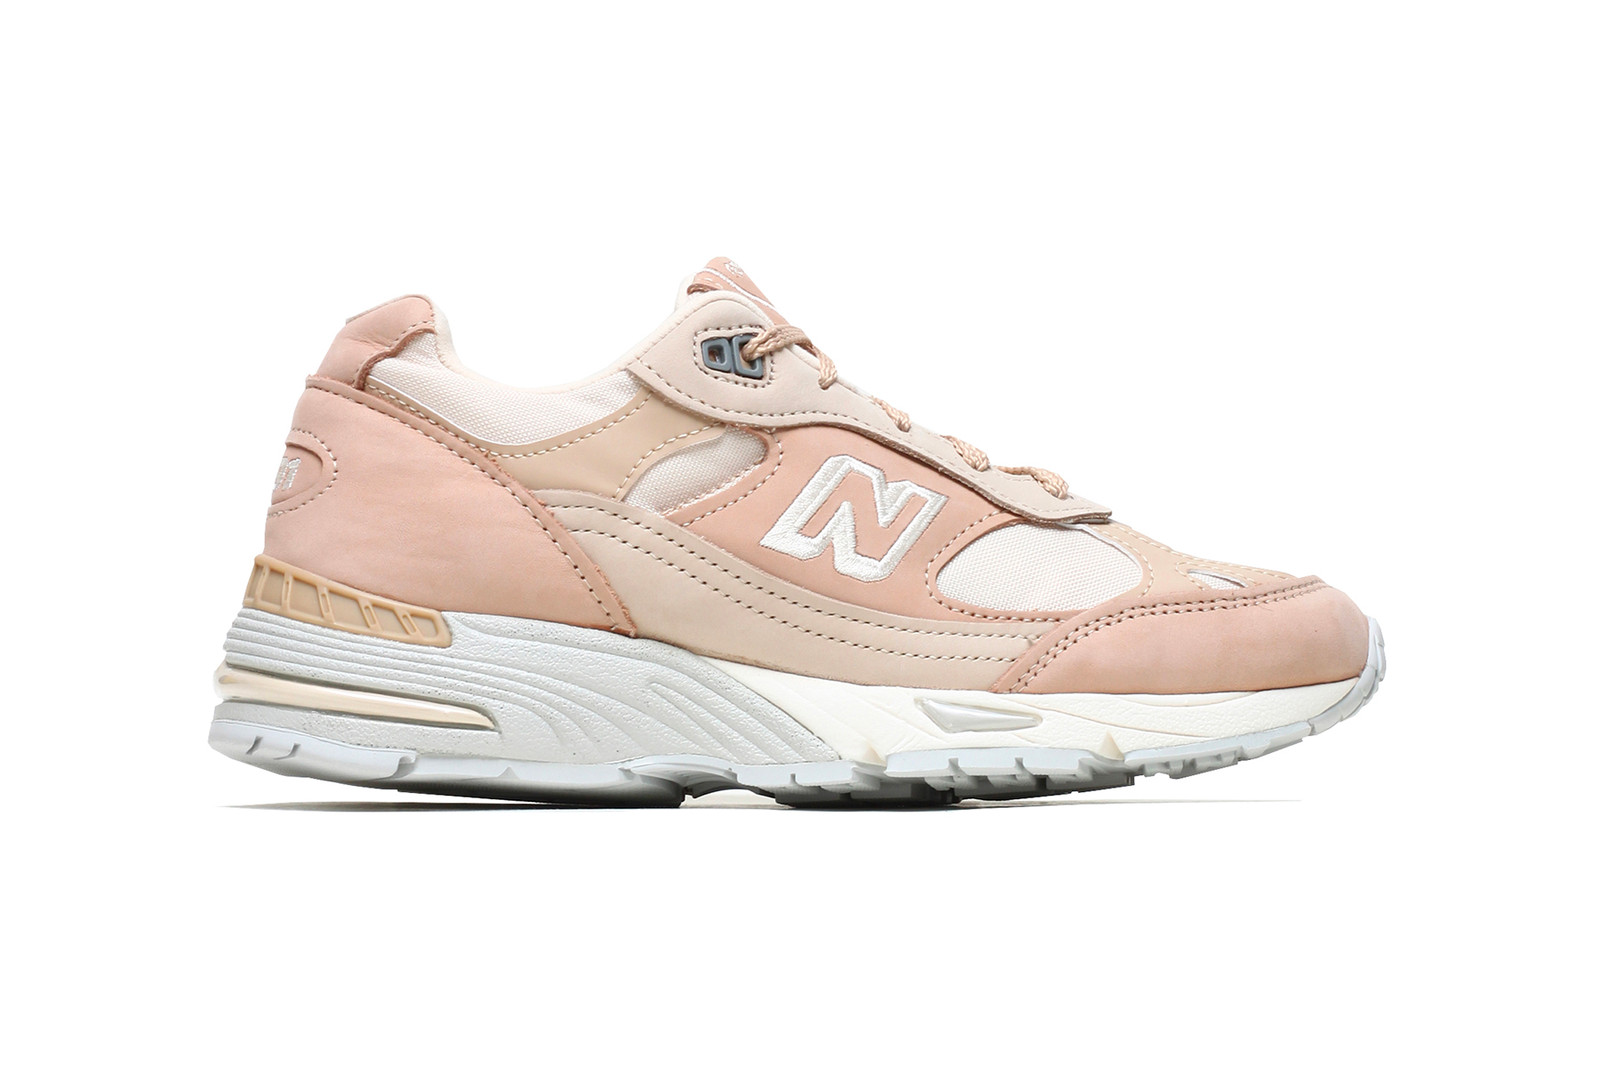 ec243faff Best Underrated Dad Sneaker Women New Balance 991 PUMA Prevail OG Nike Axel  Arigato Air Monarch